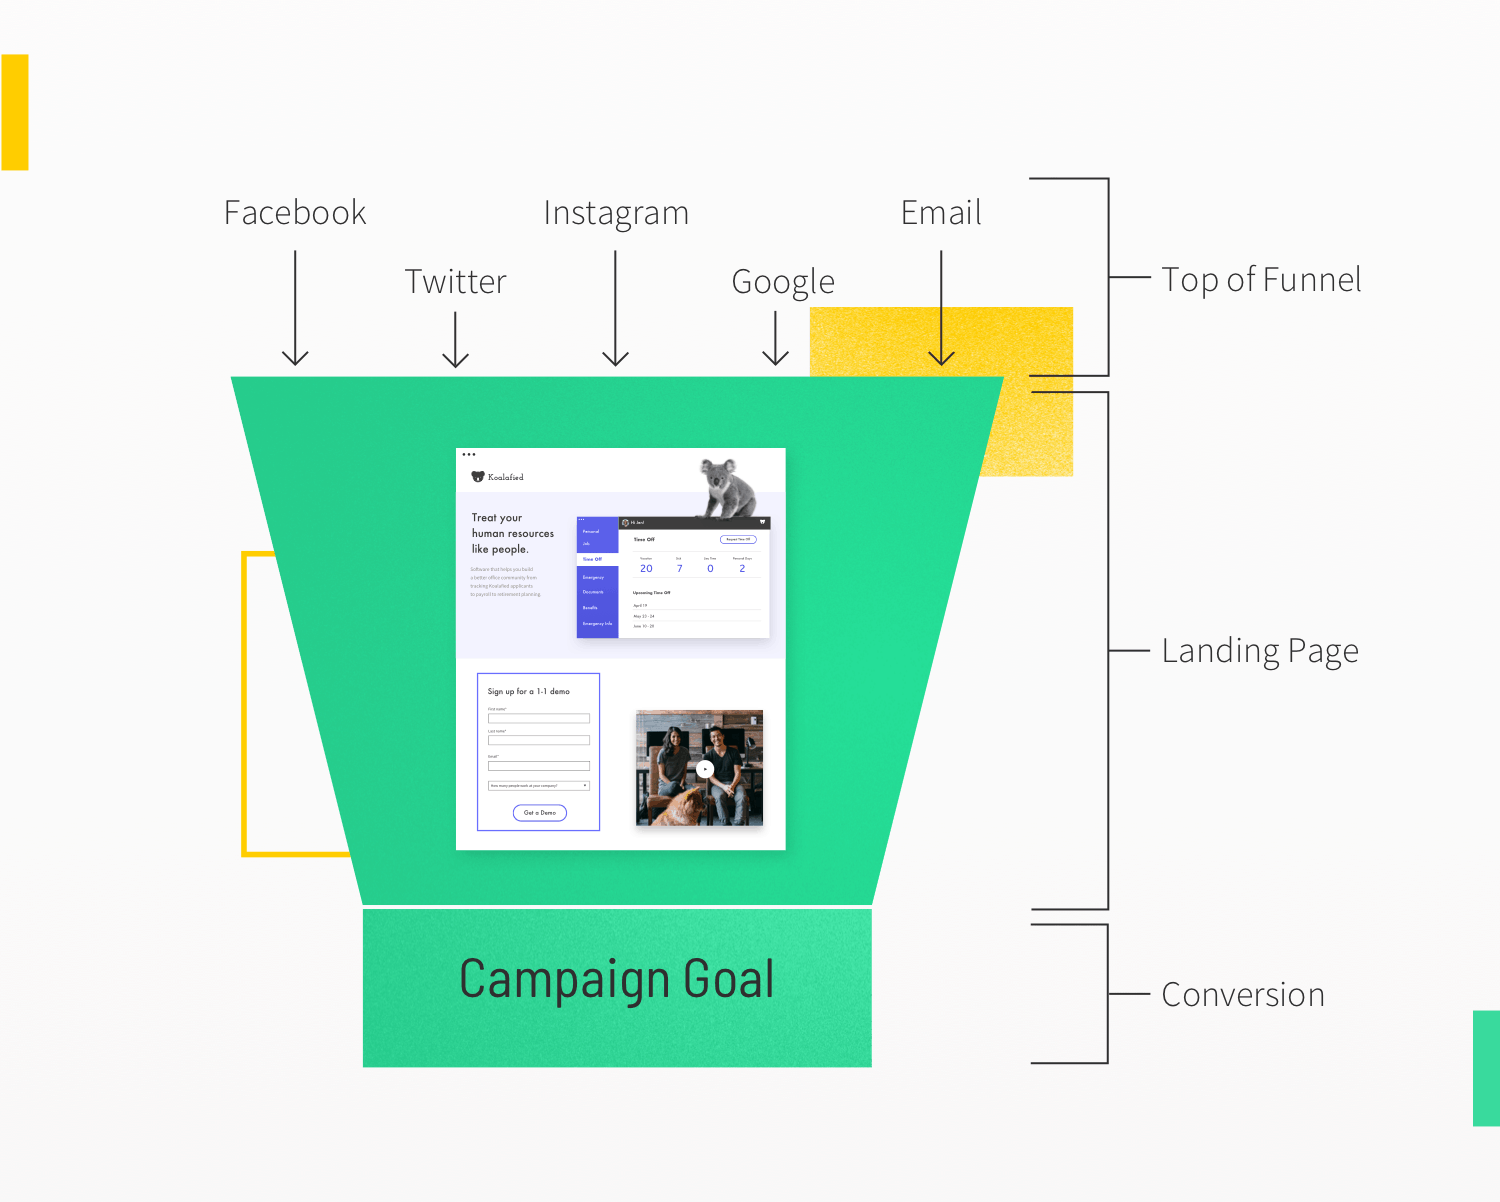 Landing page = Mid of funnel